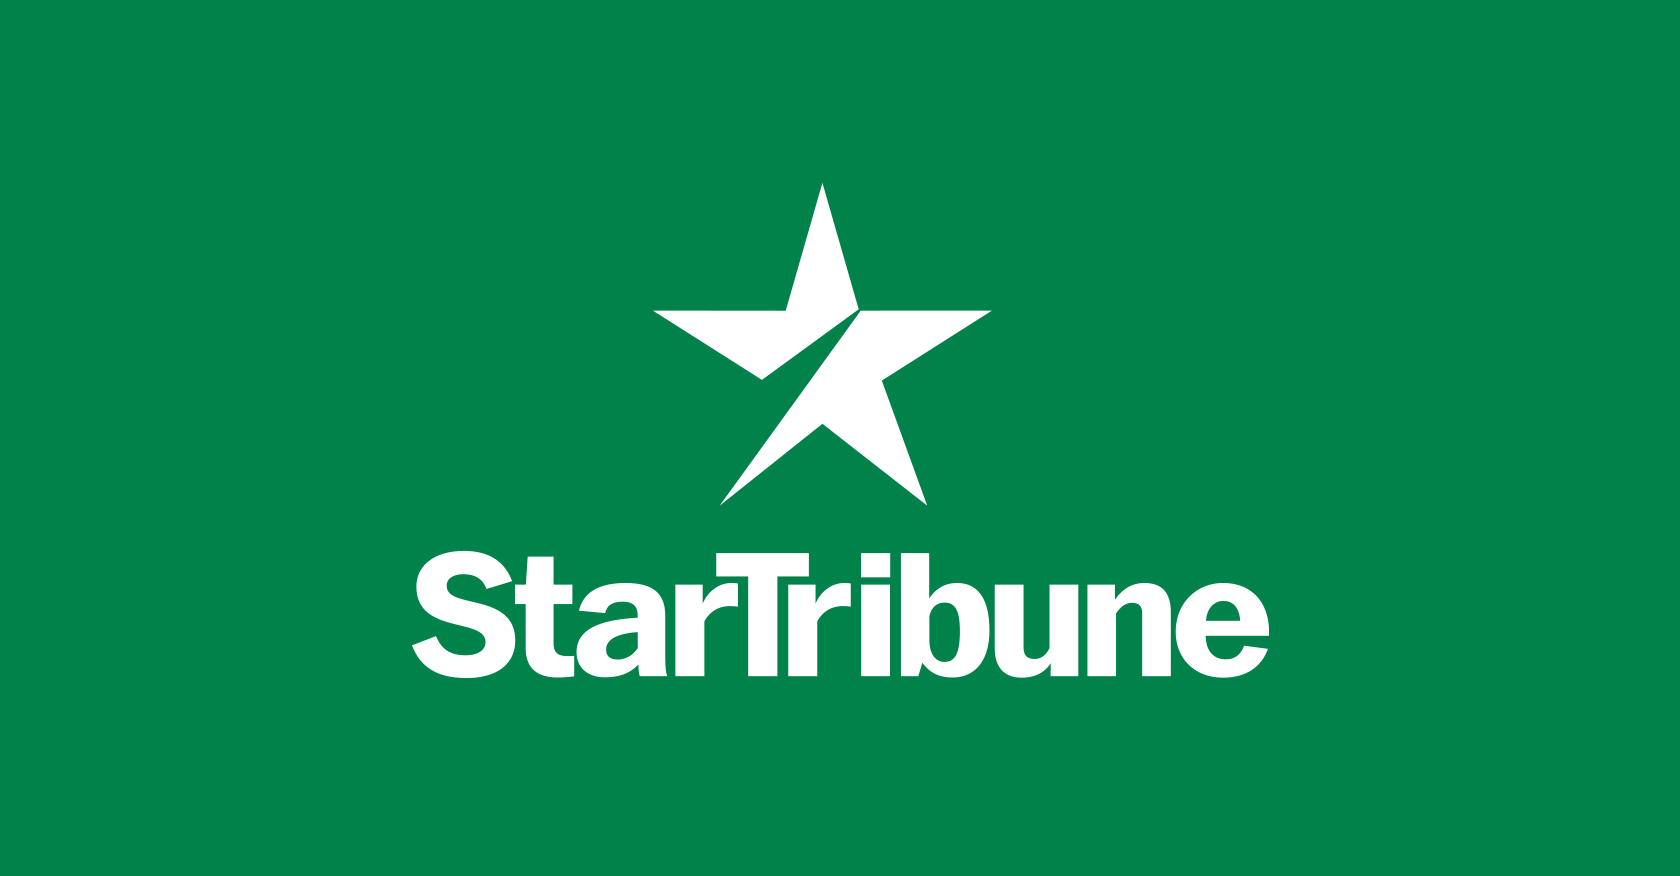 Business calendar - StarTribune.com